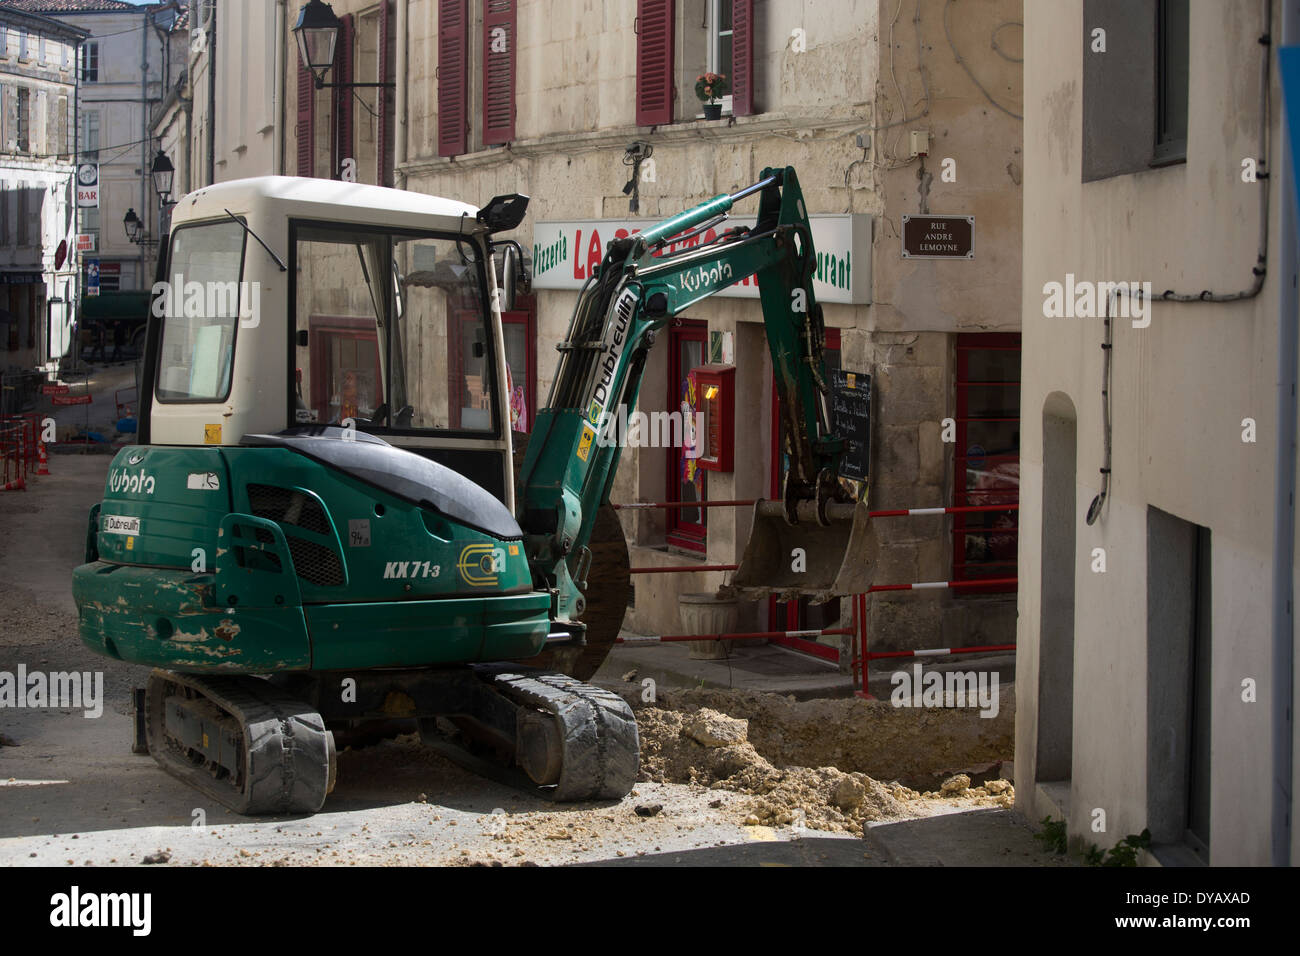 Digger excavating road outside cafe pavement - Stock Image